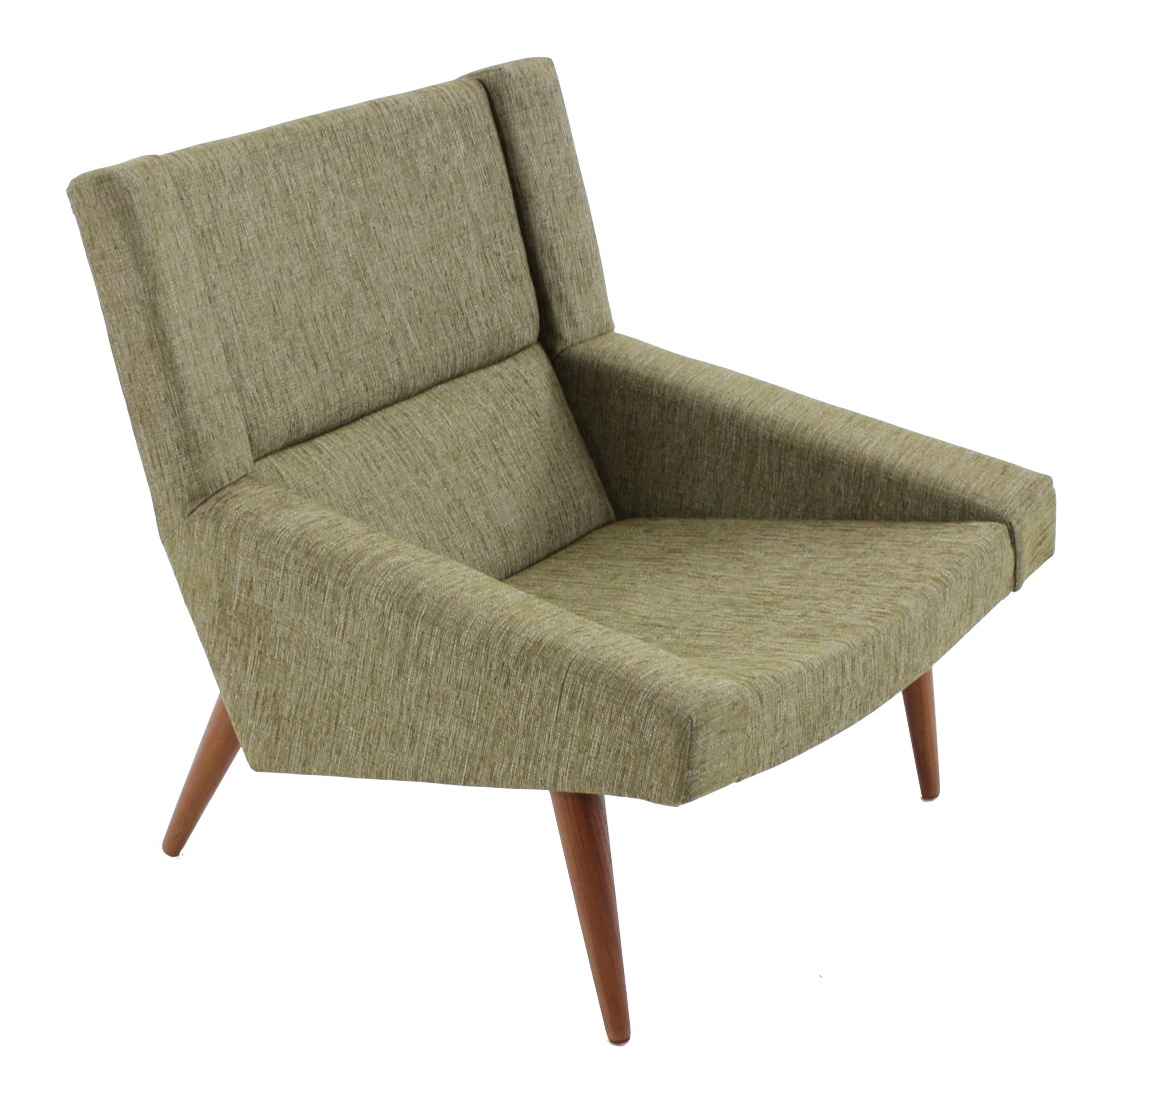 Image of: Classic Danish Lounge Chair